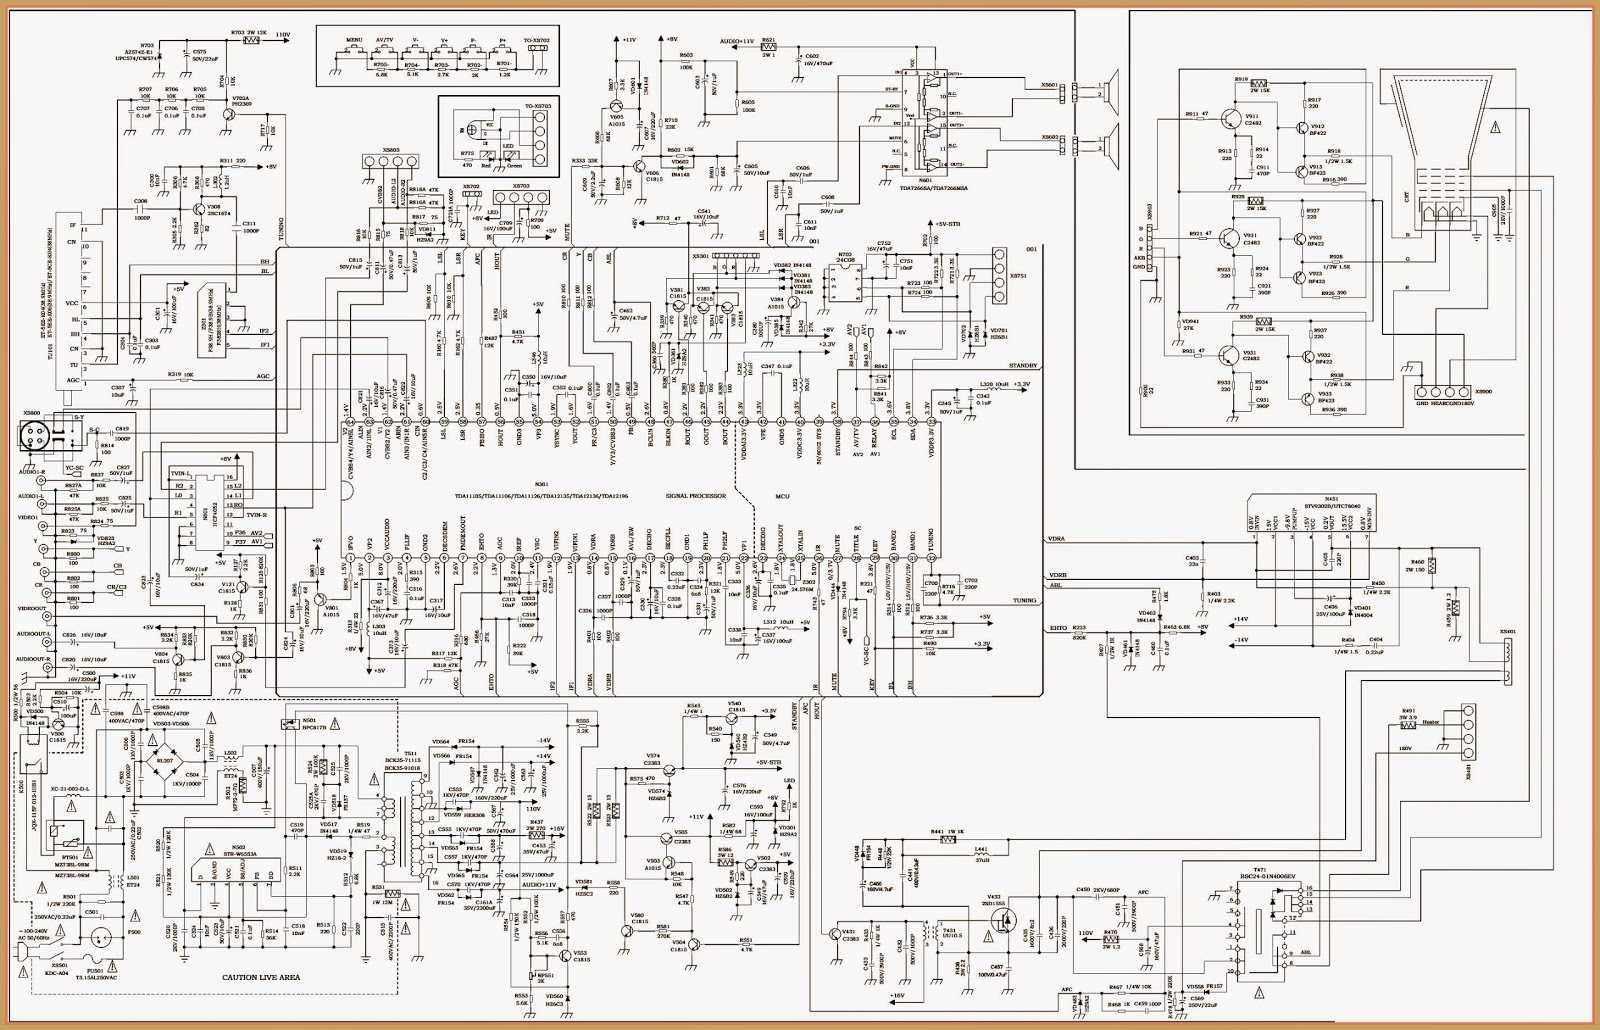 Color Tv Kit Circuit Diagram Full - Tda 11106